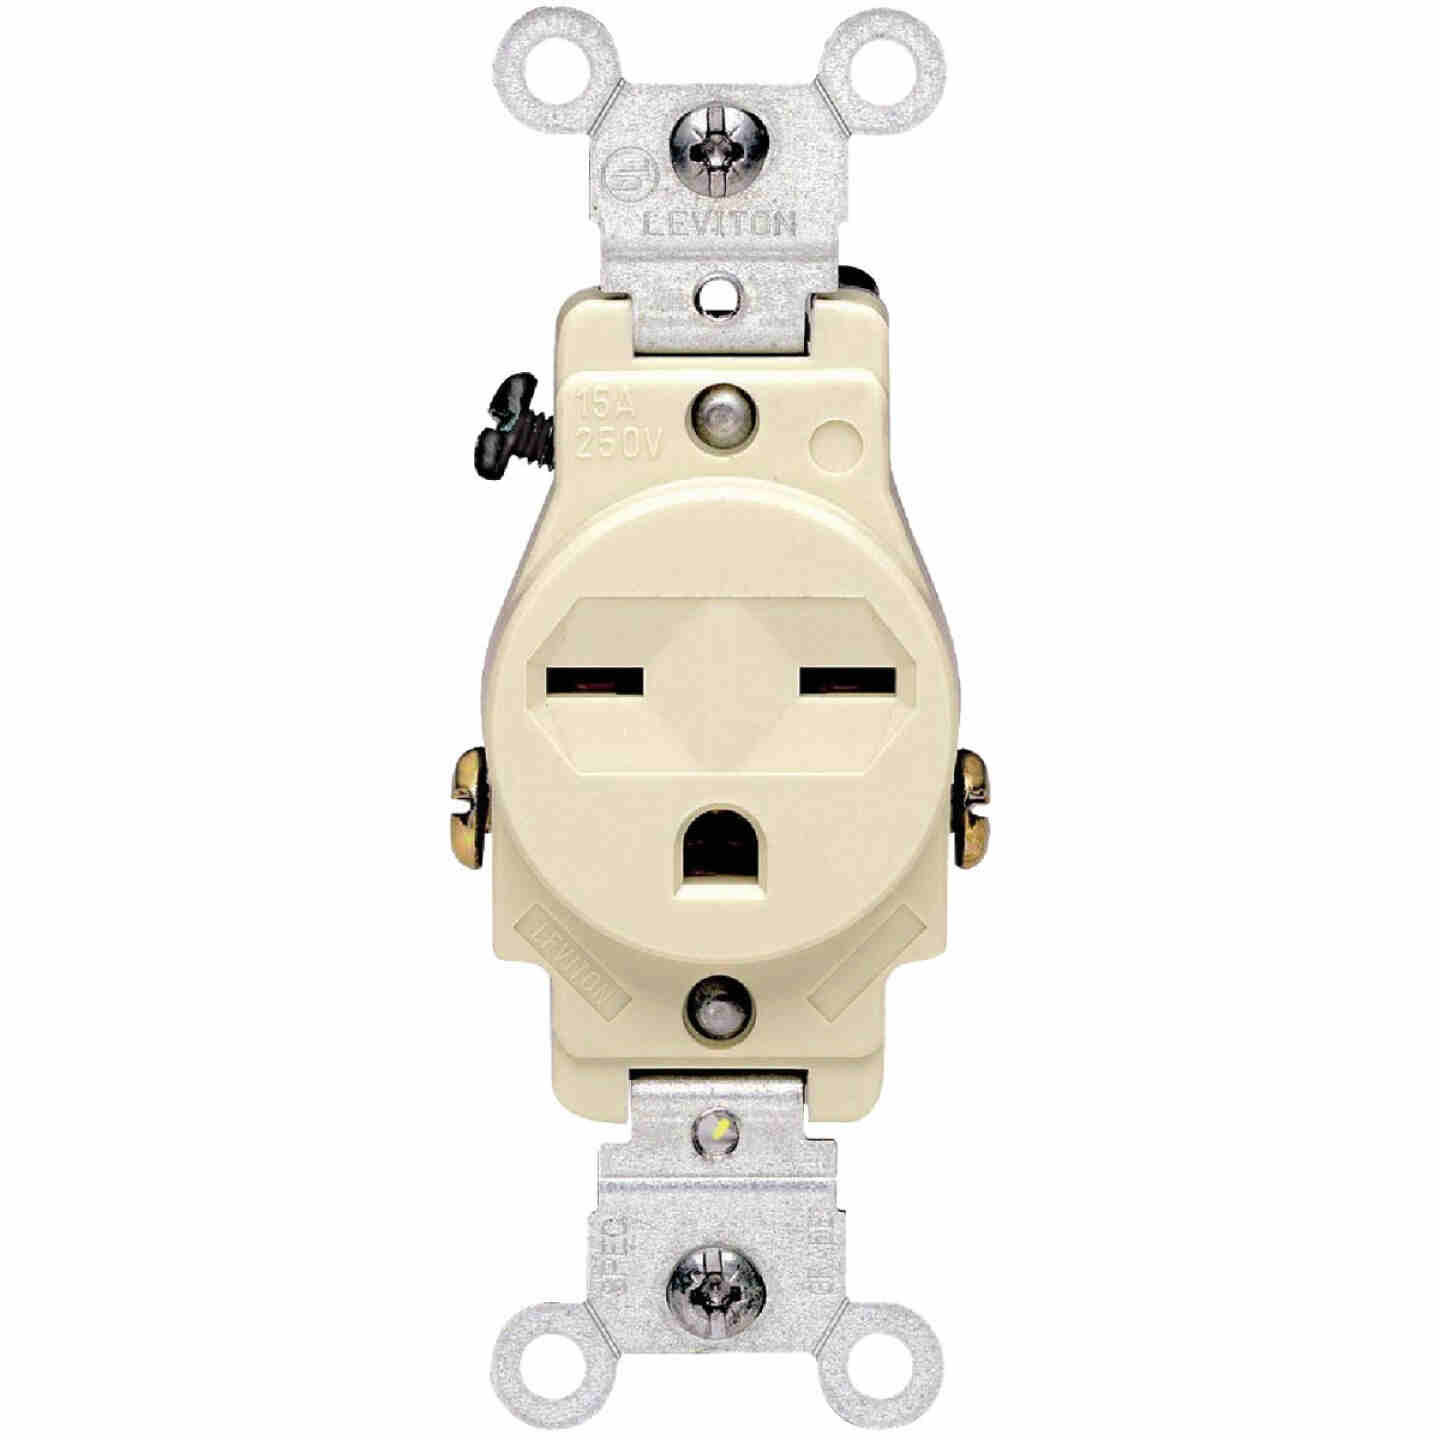 Leviton 15A Ivory Heavy-Duty 6-15R Grounding Single Outlet Image 2